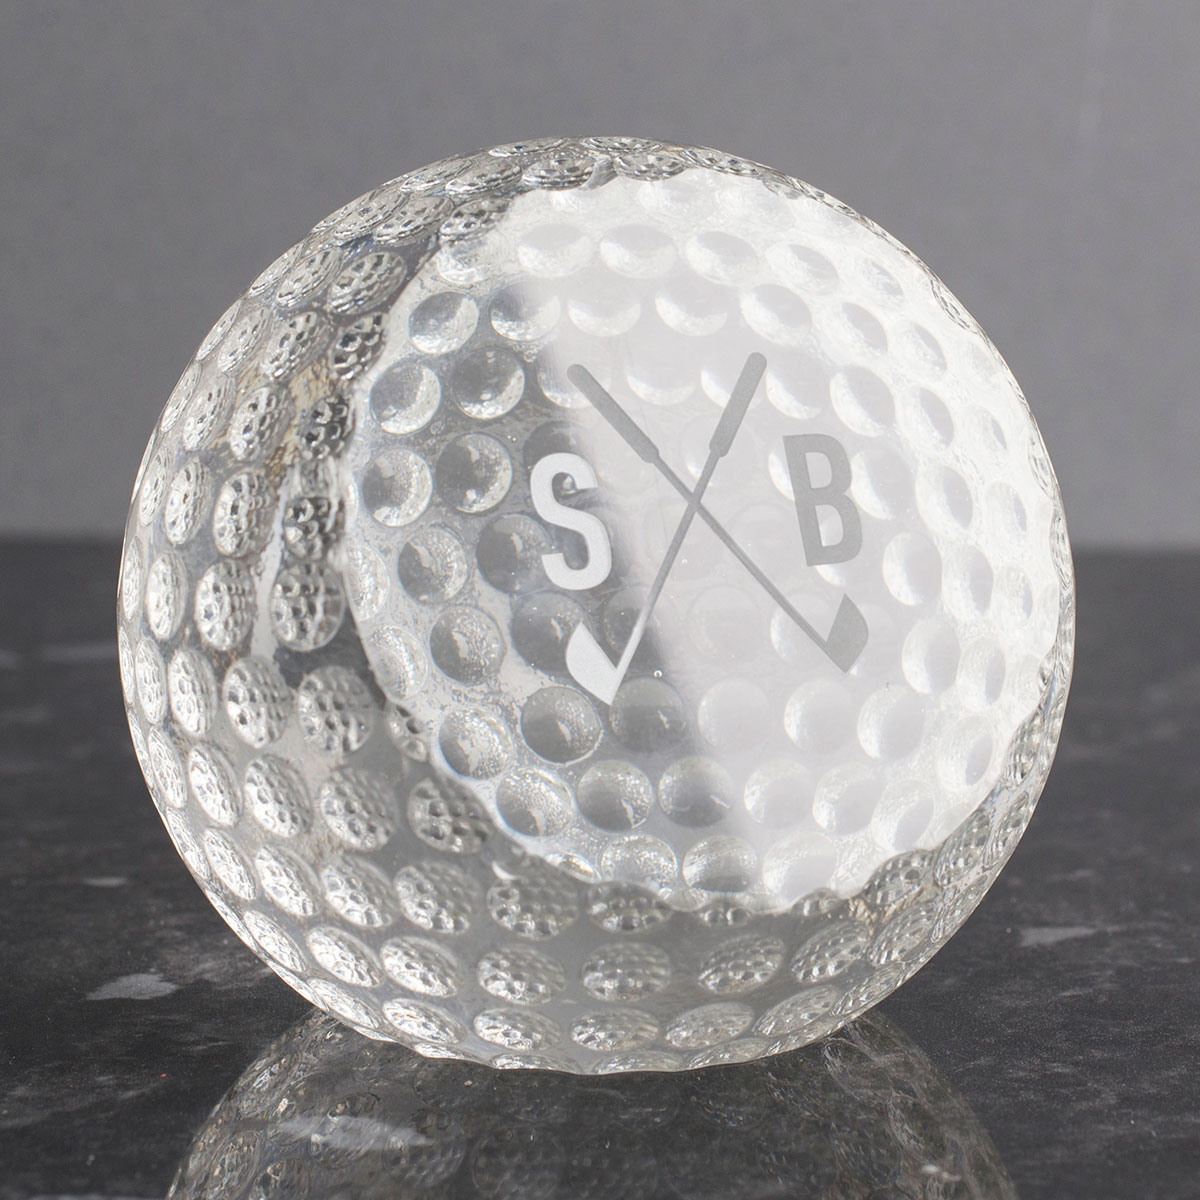 Personalised Crystal Golf Ball Paperweight